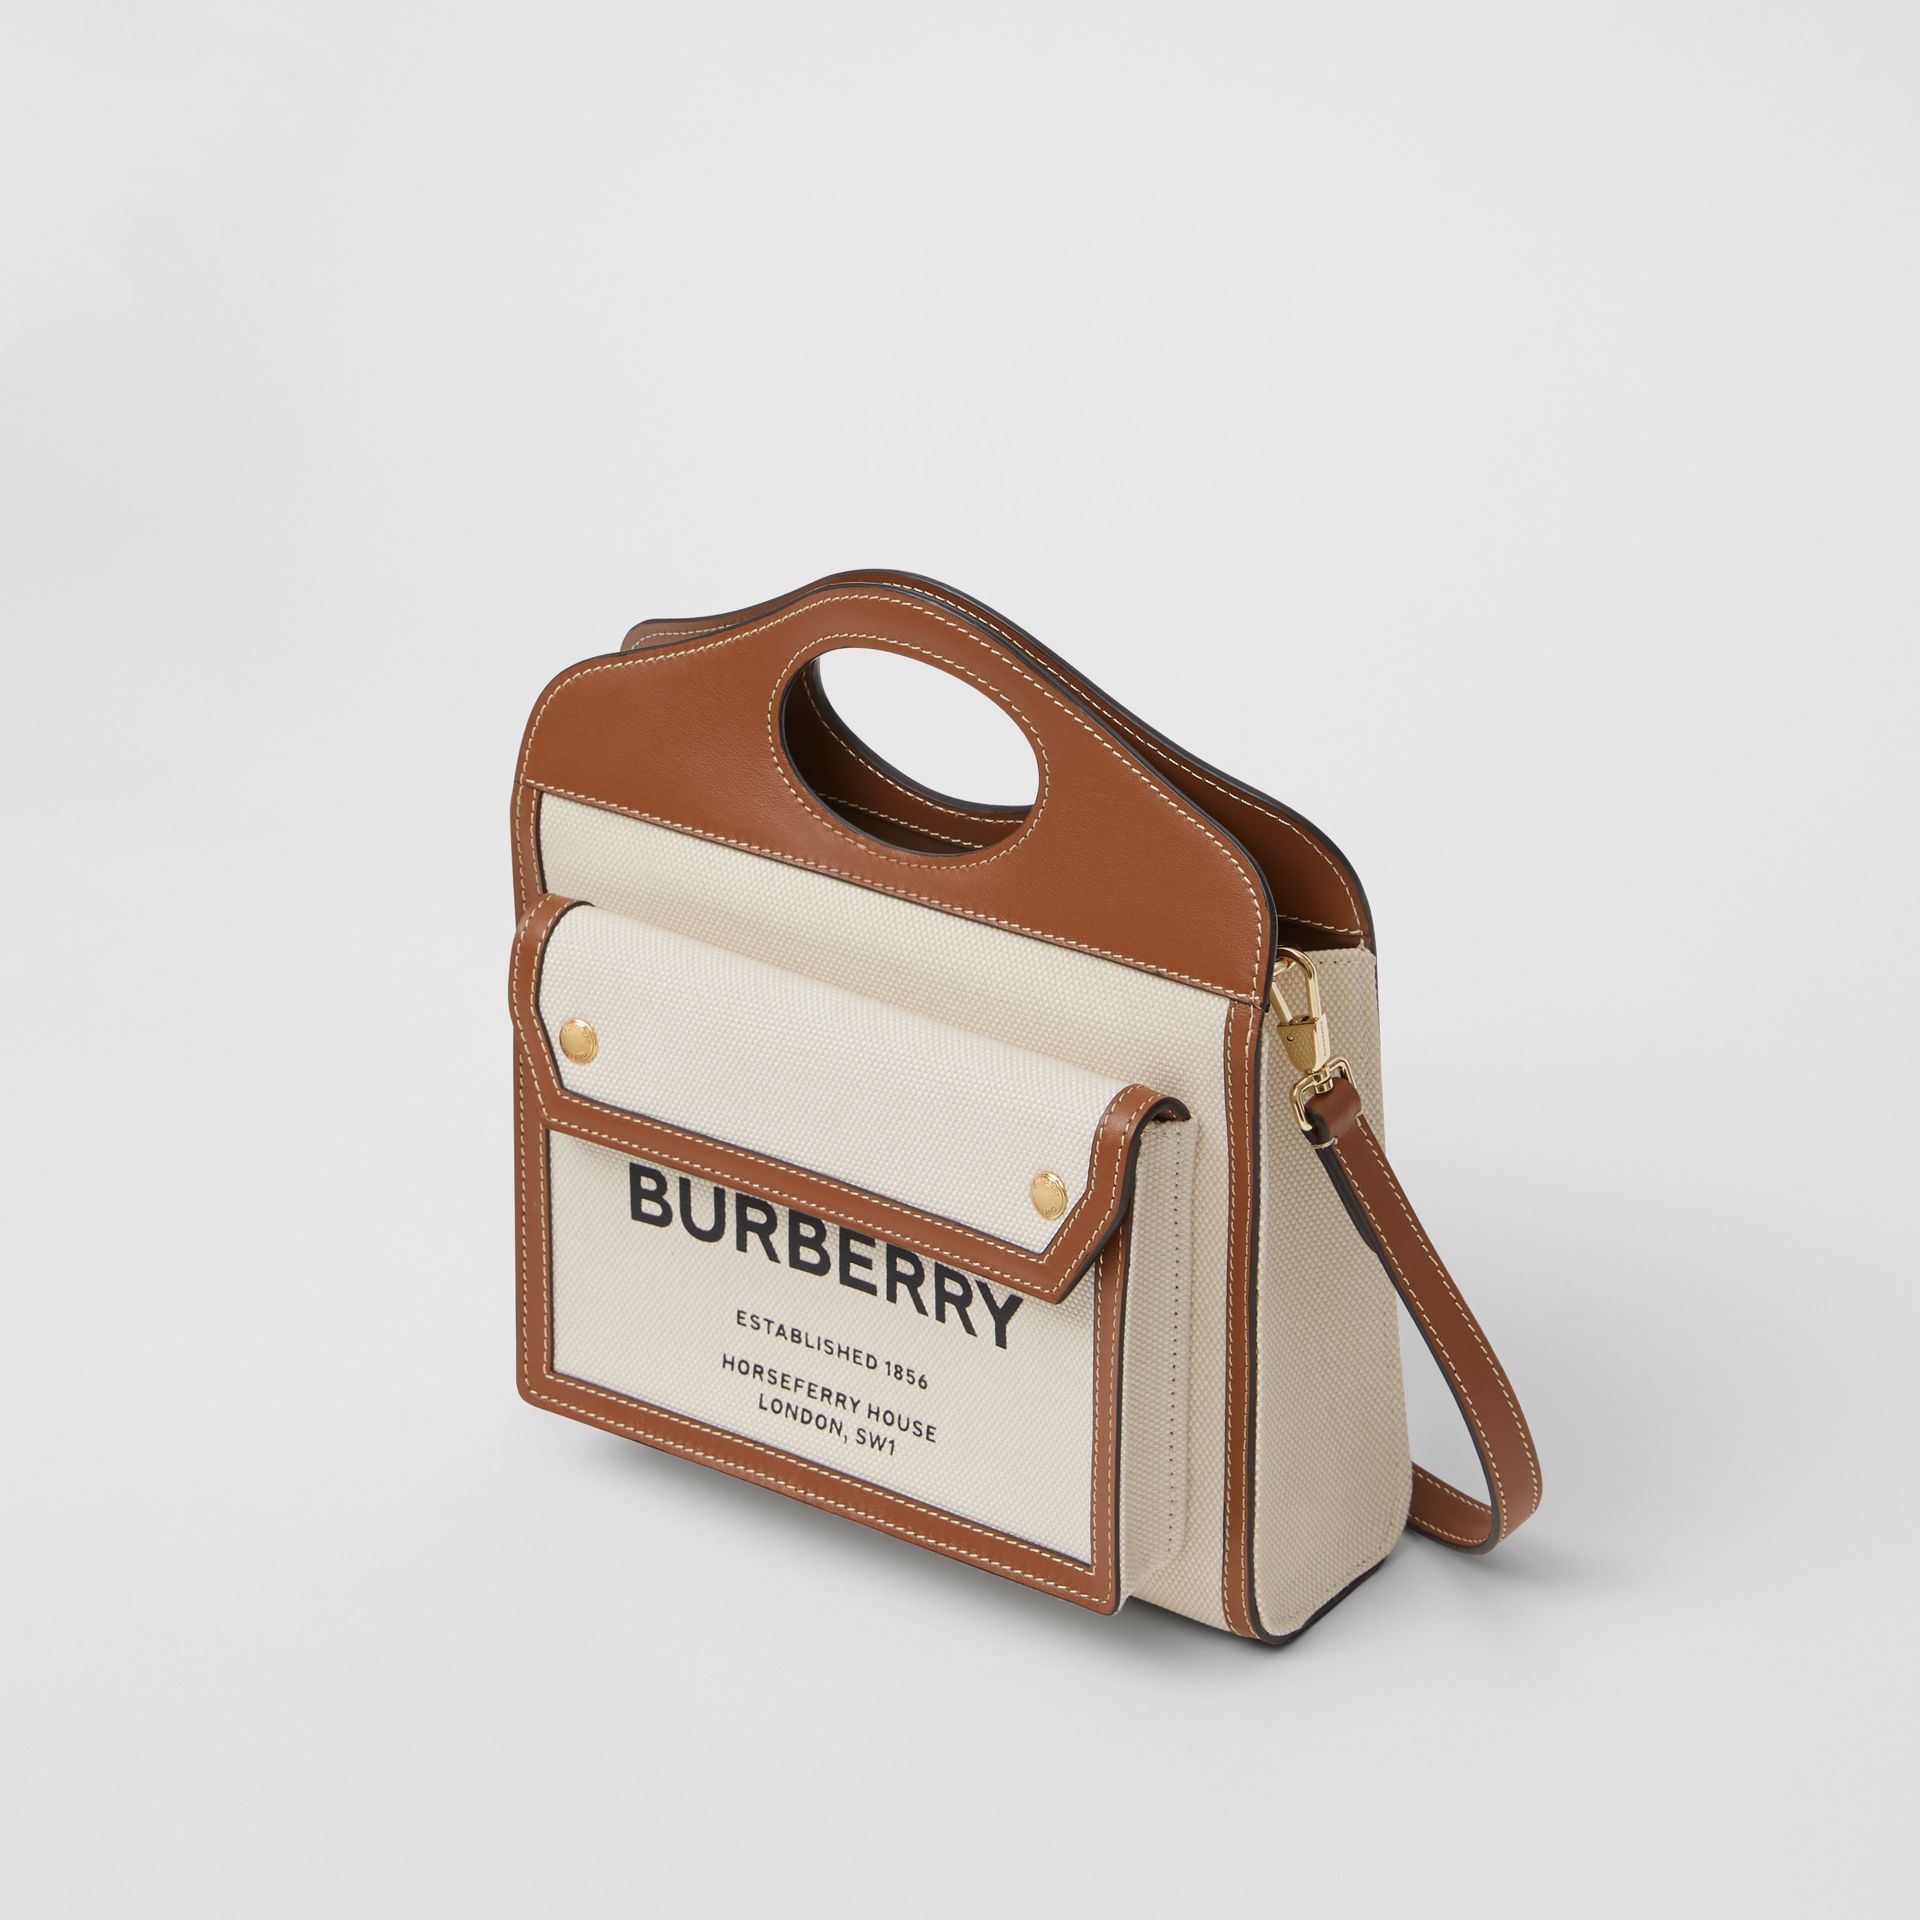 Borsa Pocket mini bicolore in tela e pelle (Naturale/marrone Malto) - Donna | Burberry - immagine della galleria 3